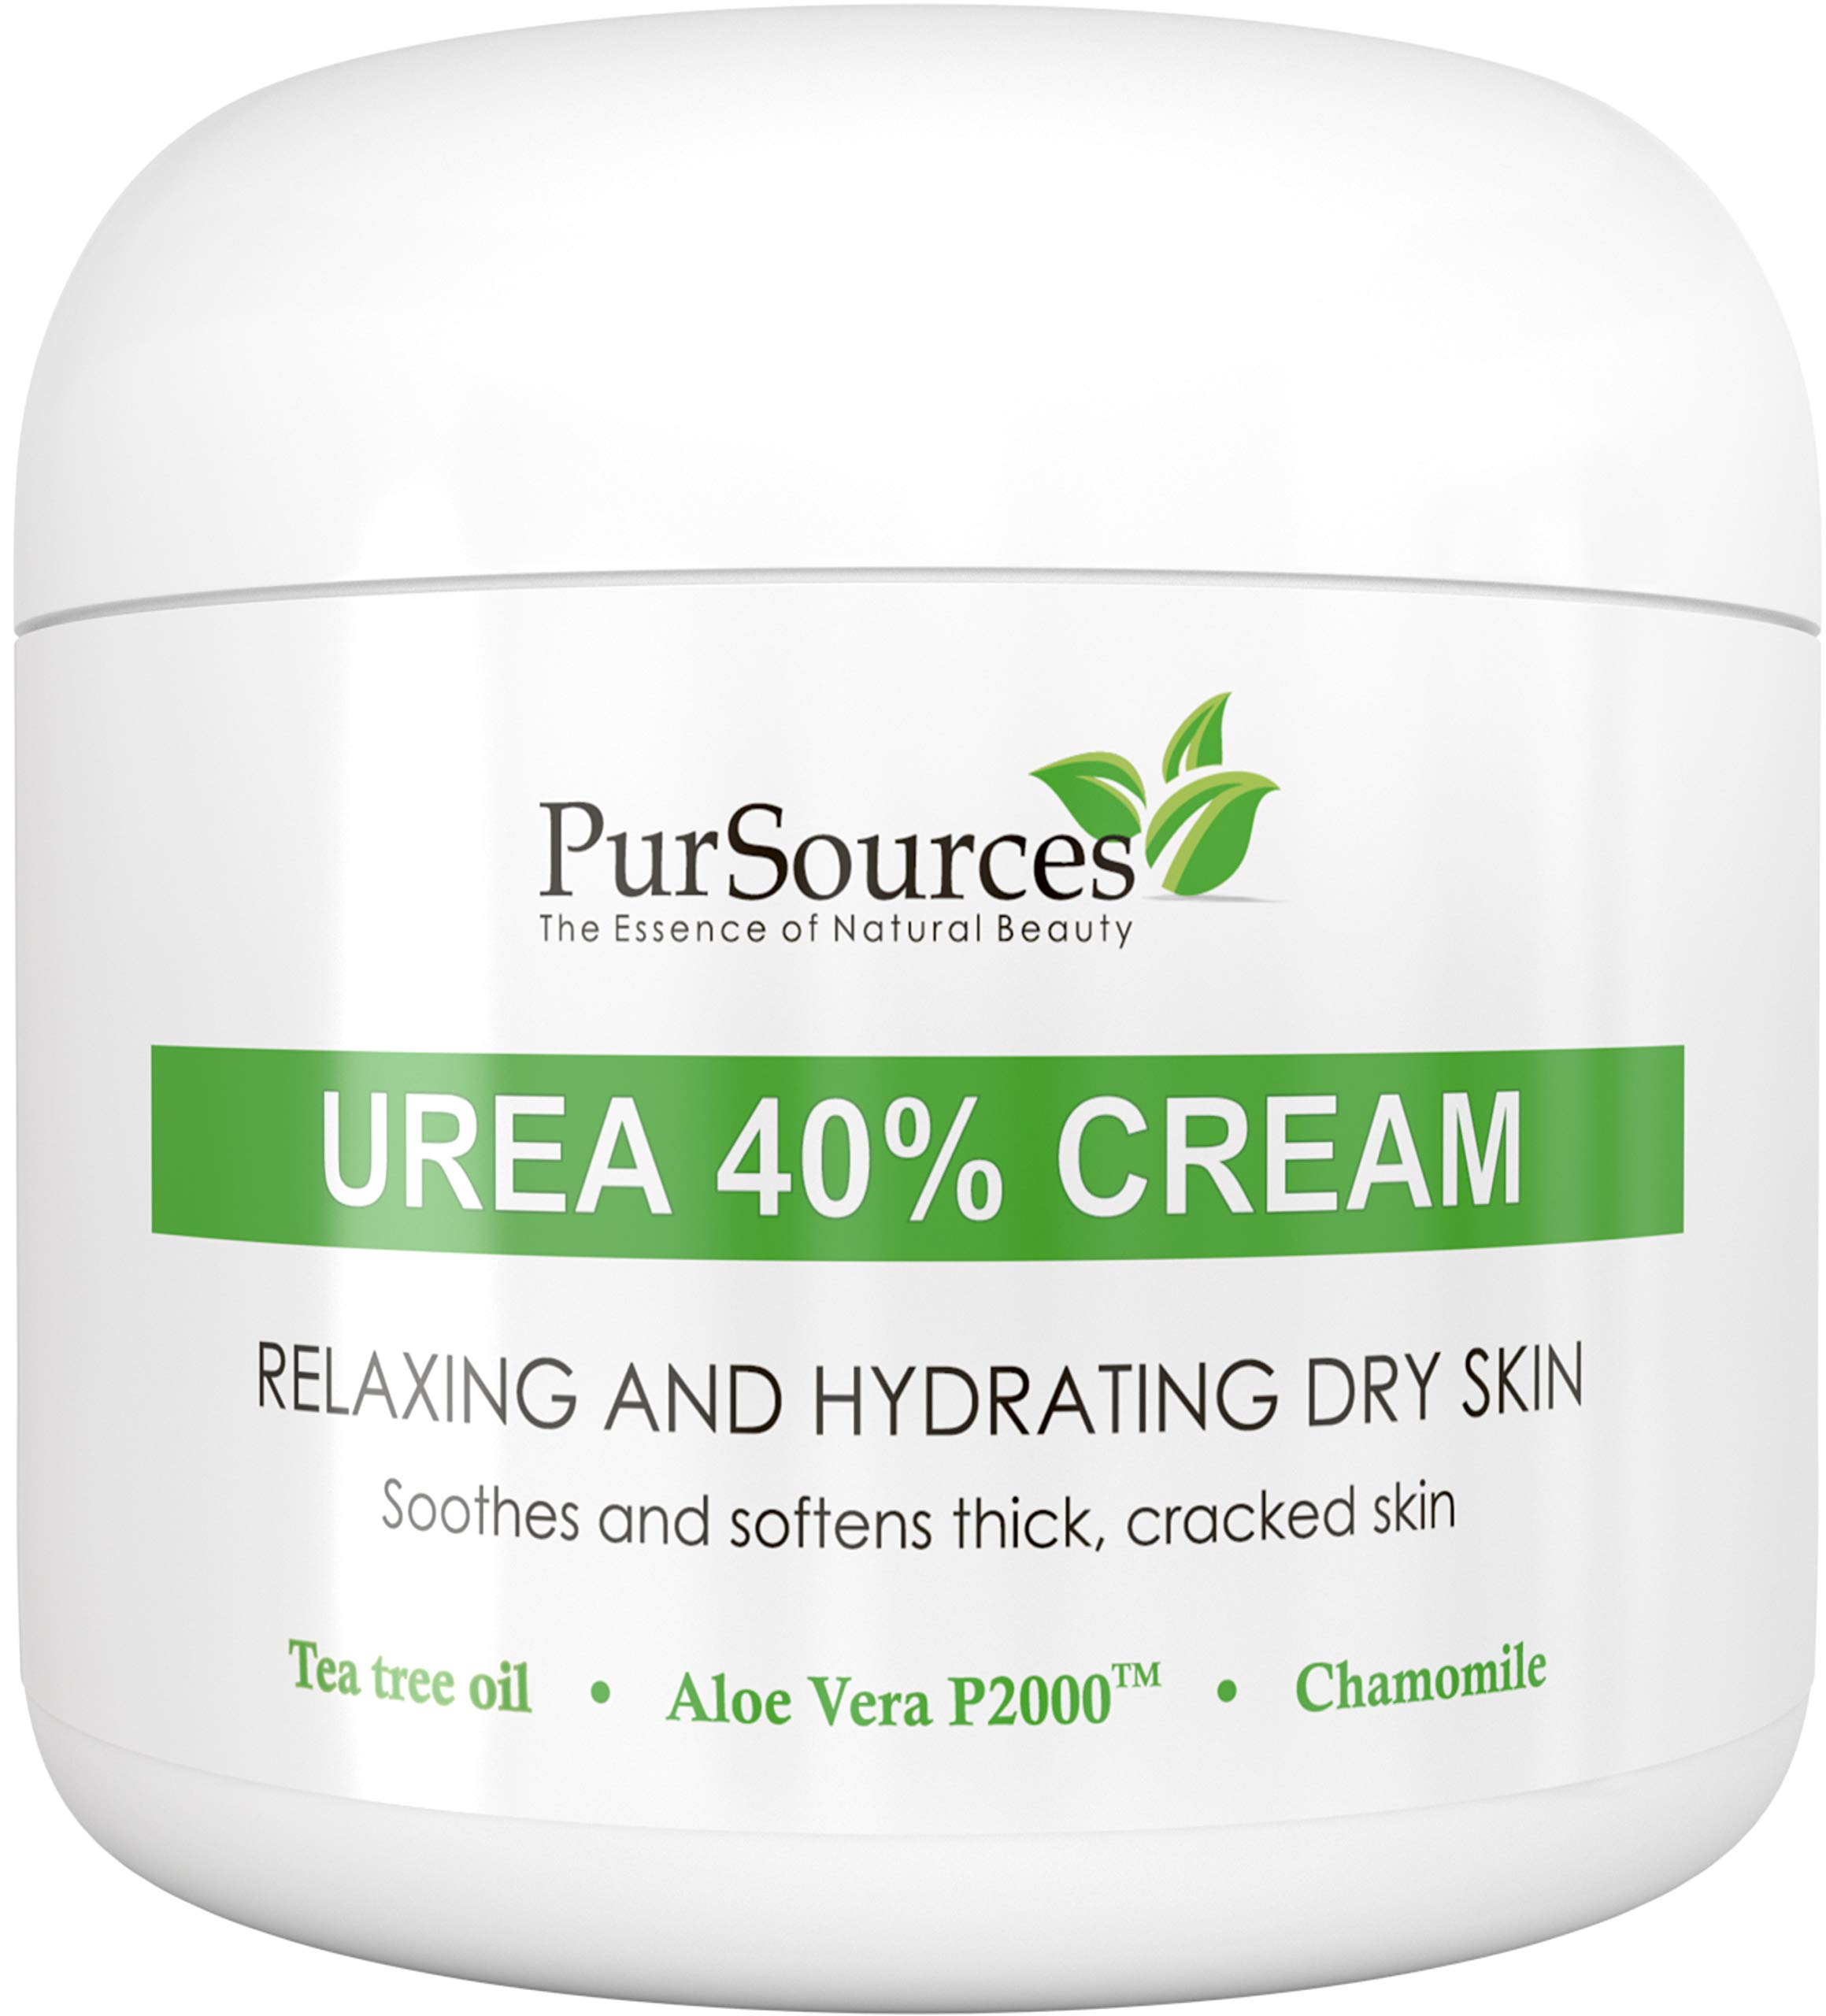 PurSources Urea 40% Foot Cream 4 oz - Best Callus Remover - Moisturizes & Rehydrates Thick, Cracked, Rough, Dead & Dry Skin - For Feet, Elbows and Hands + Free Pumice Stone - 100% Money Back Guarantee by PurSources Urea Cream